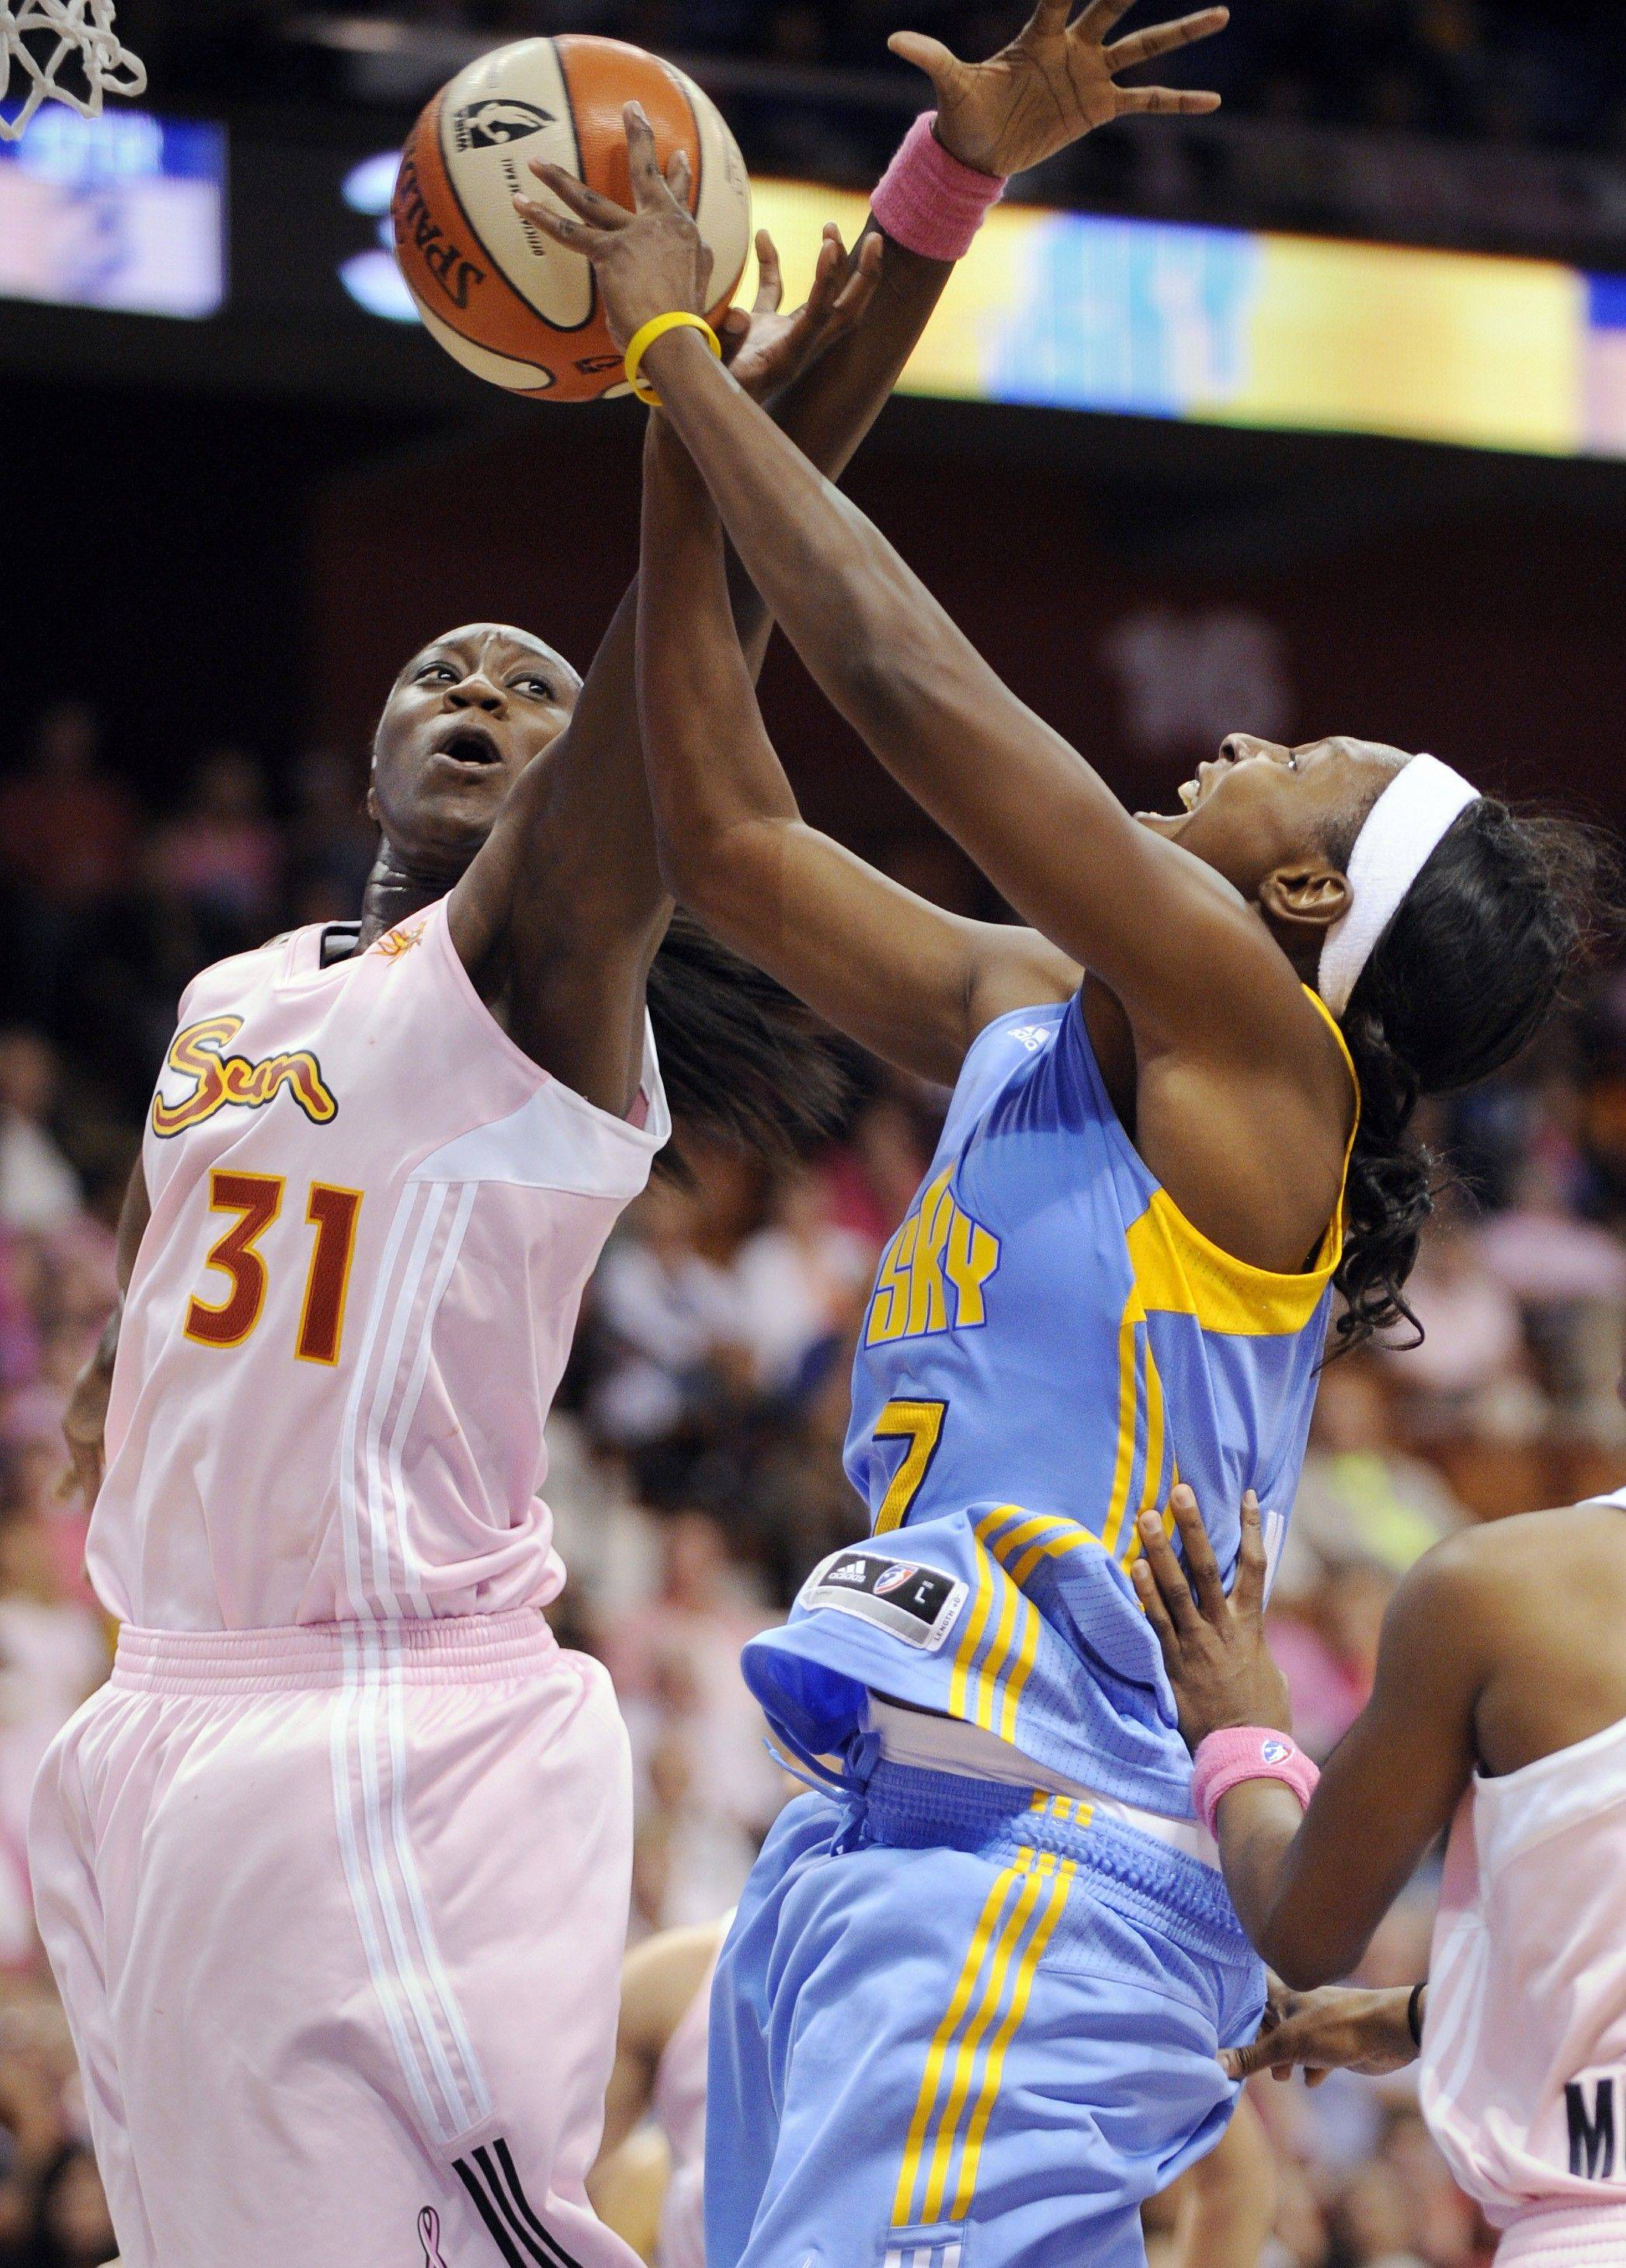 WNBA veteran guard Shay Murphy, right, has signed with the Chicago Sky for the 2012 season.